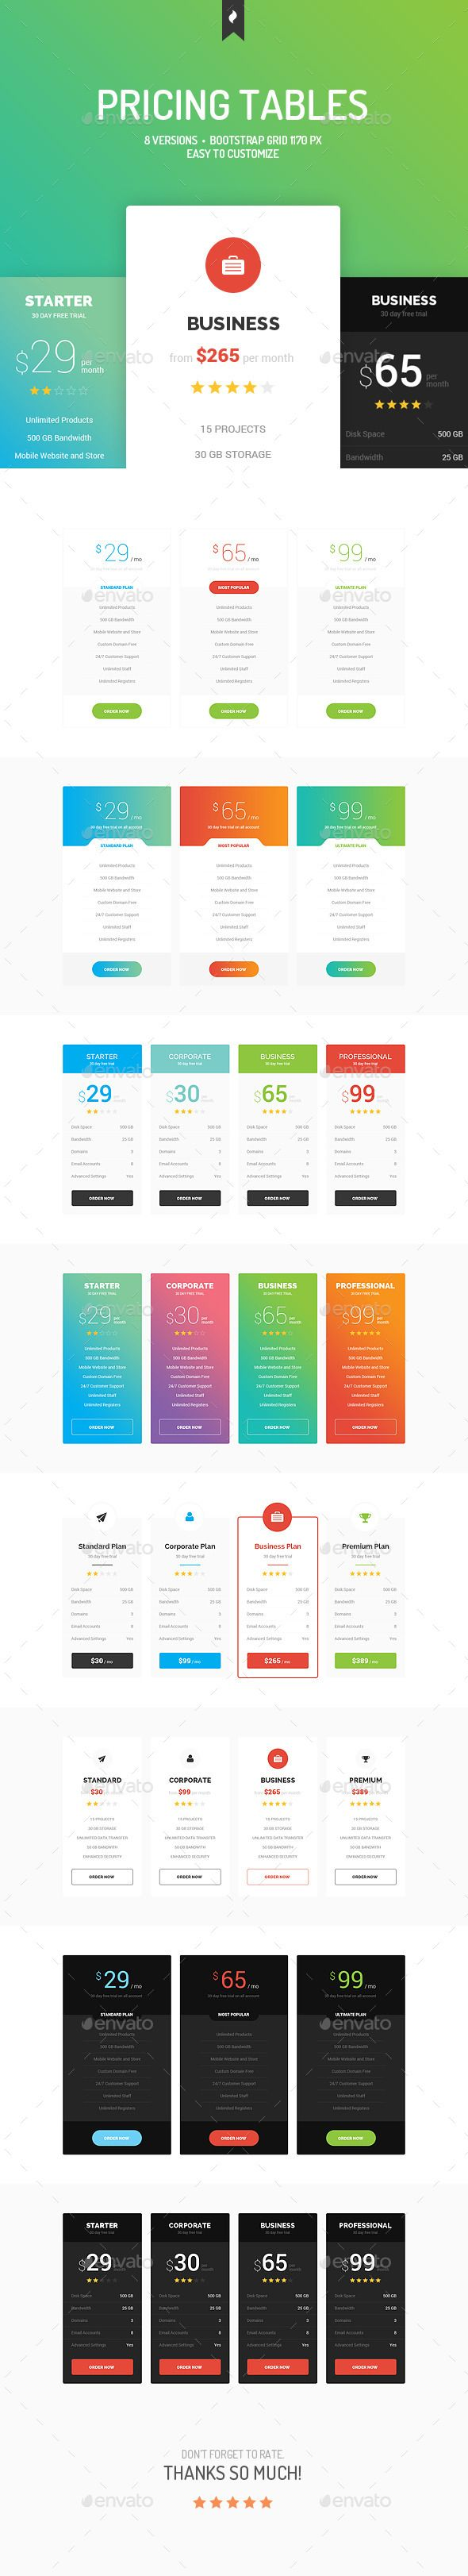 Pricing Tables Template PSD. Download here: http://graphicriver.net/item/pricing-tables/10961155?ref=ksioks